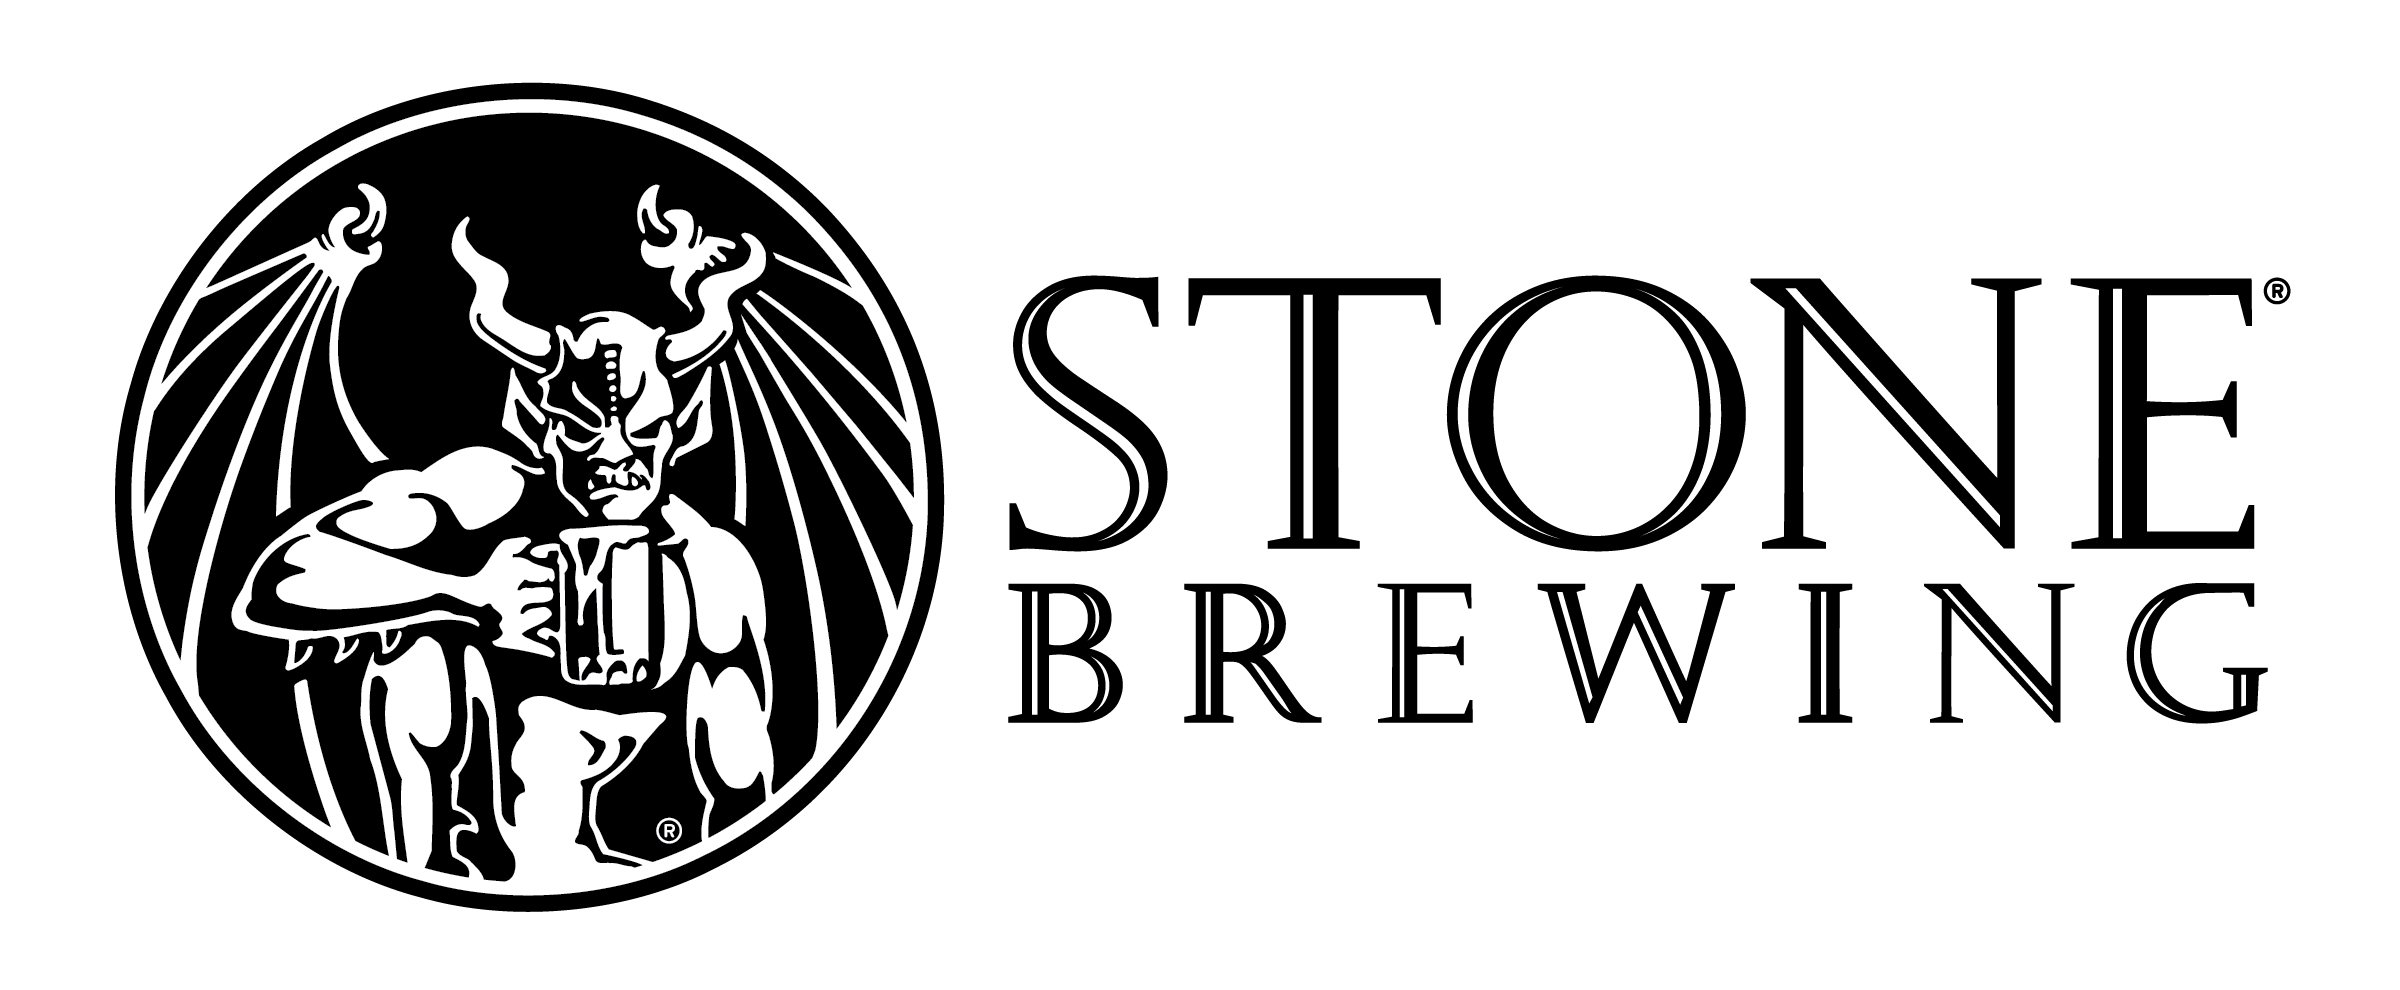 Stone Brewing - logo